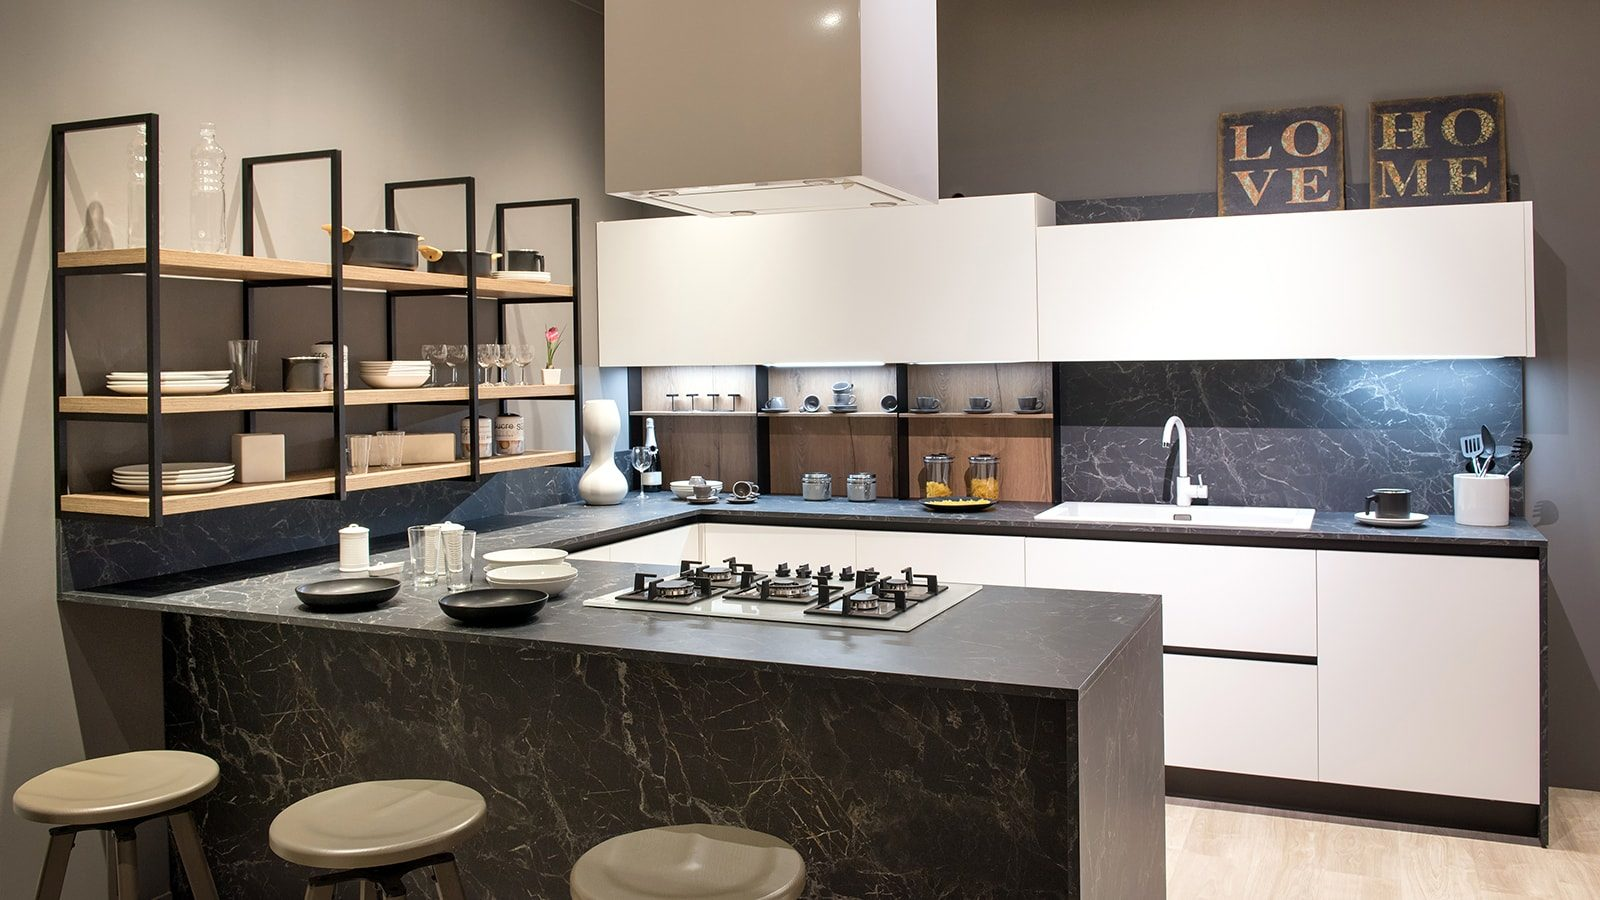 The psychology of kitchen design